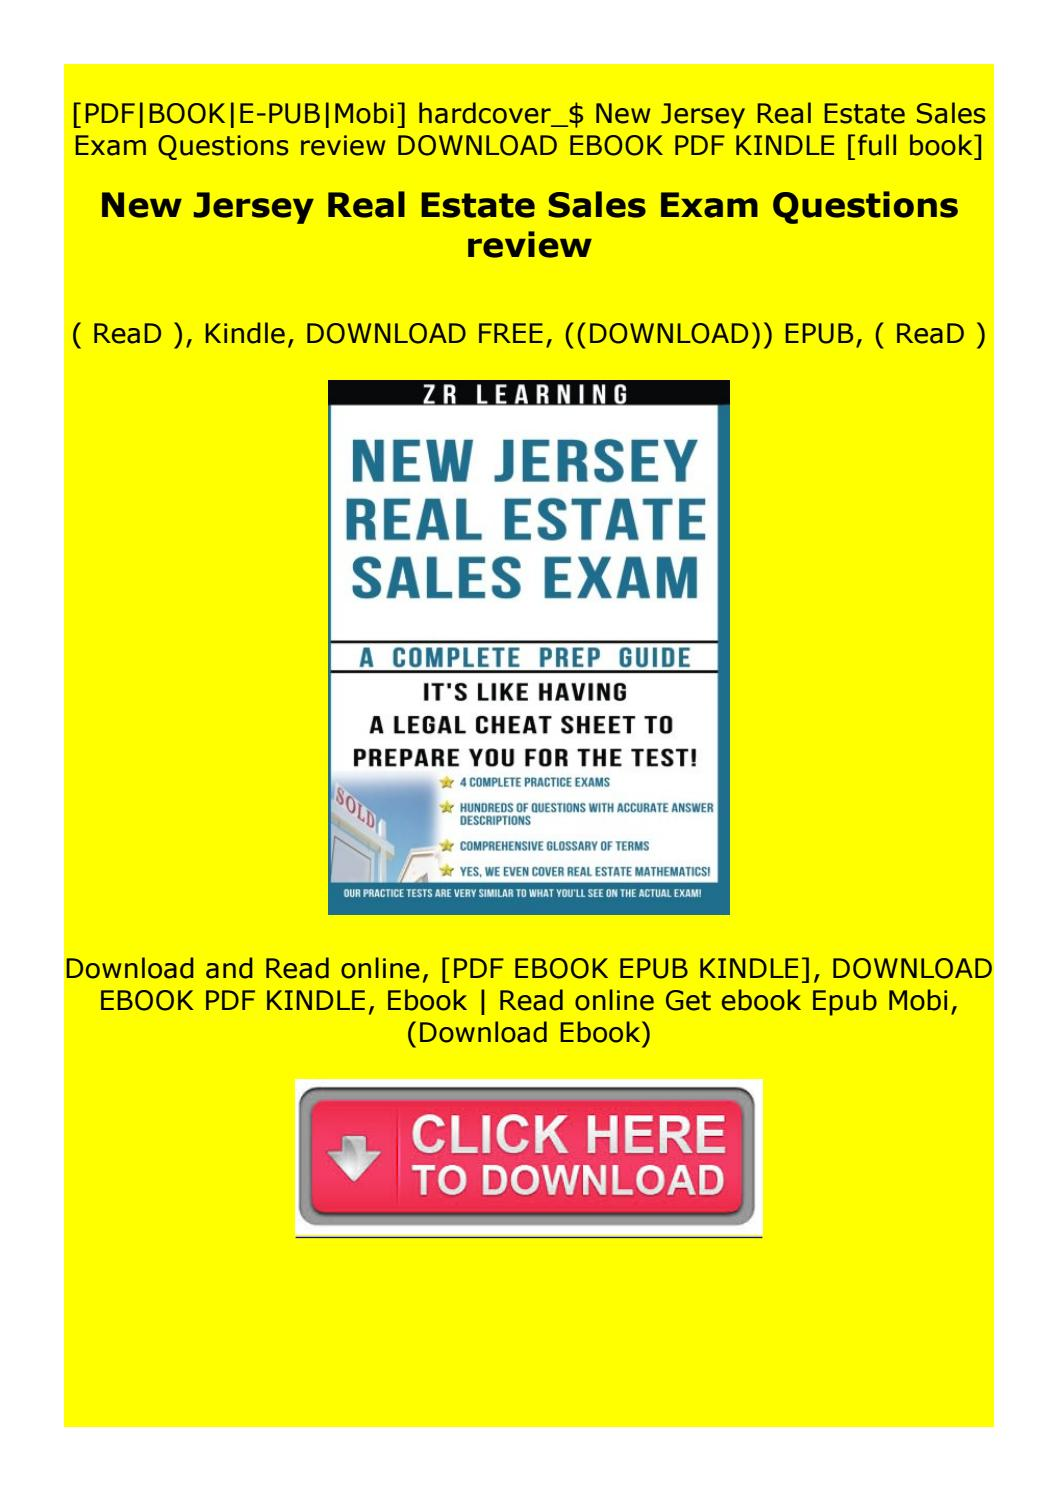 New Jersey Real Estate Sales Exam Questions Review By Fdedfvrfgh Issuu